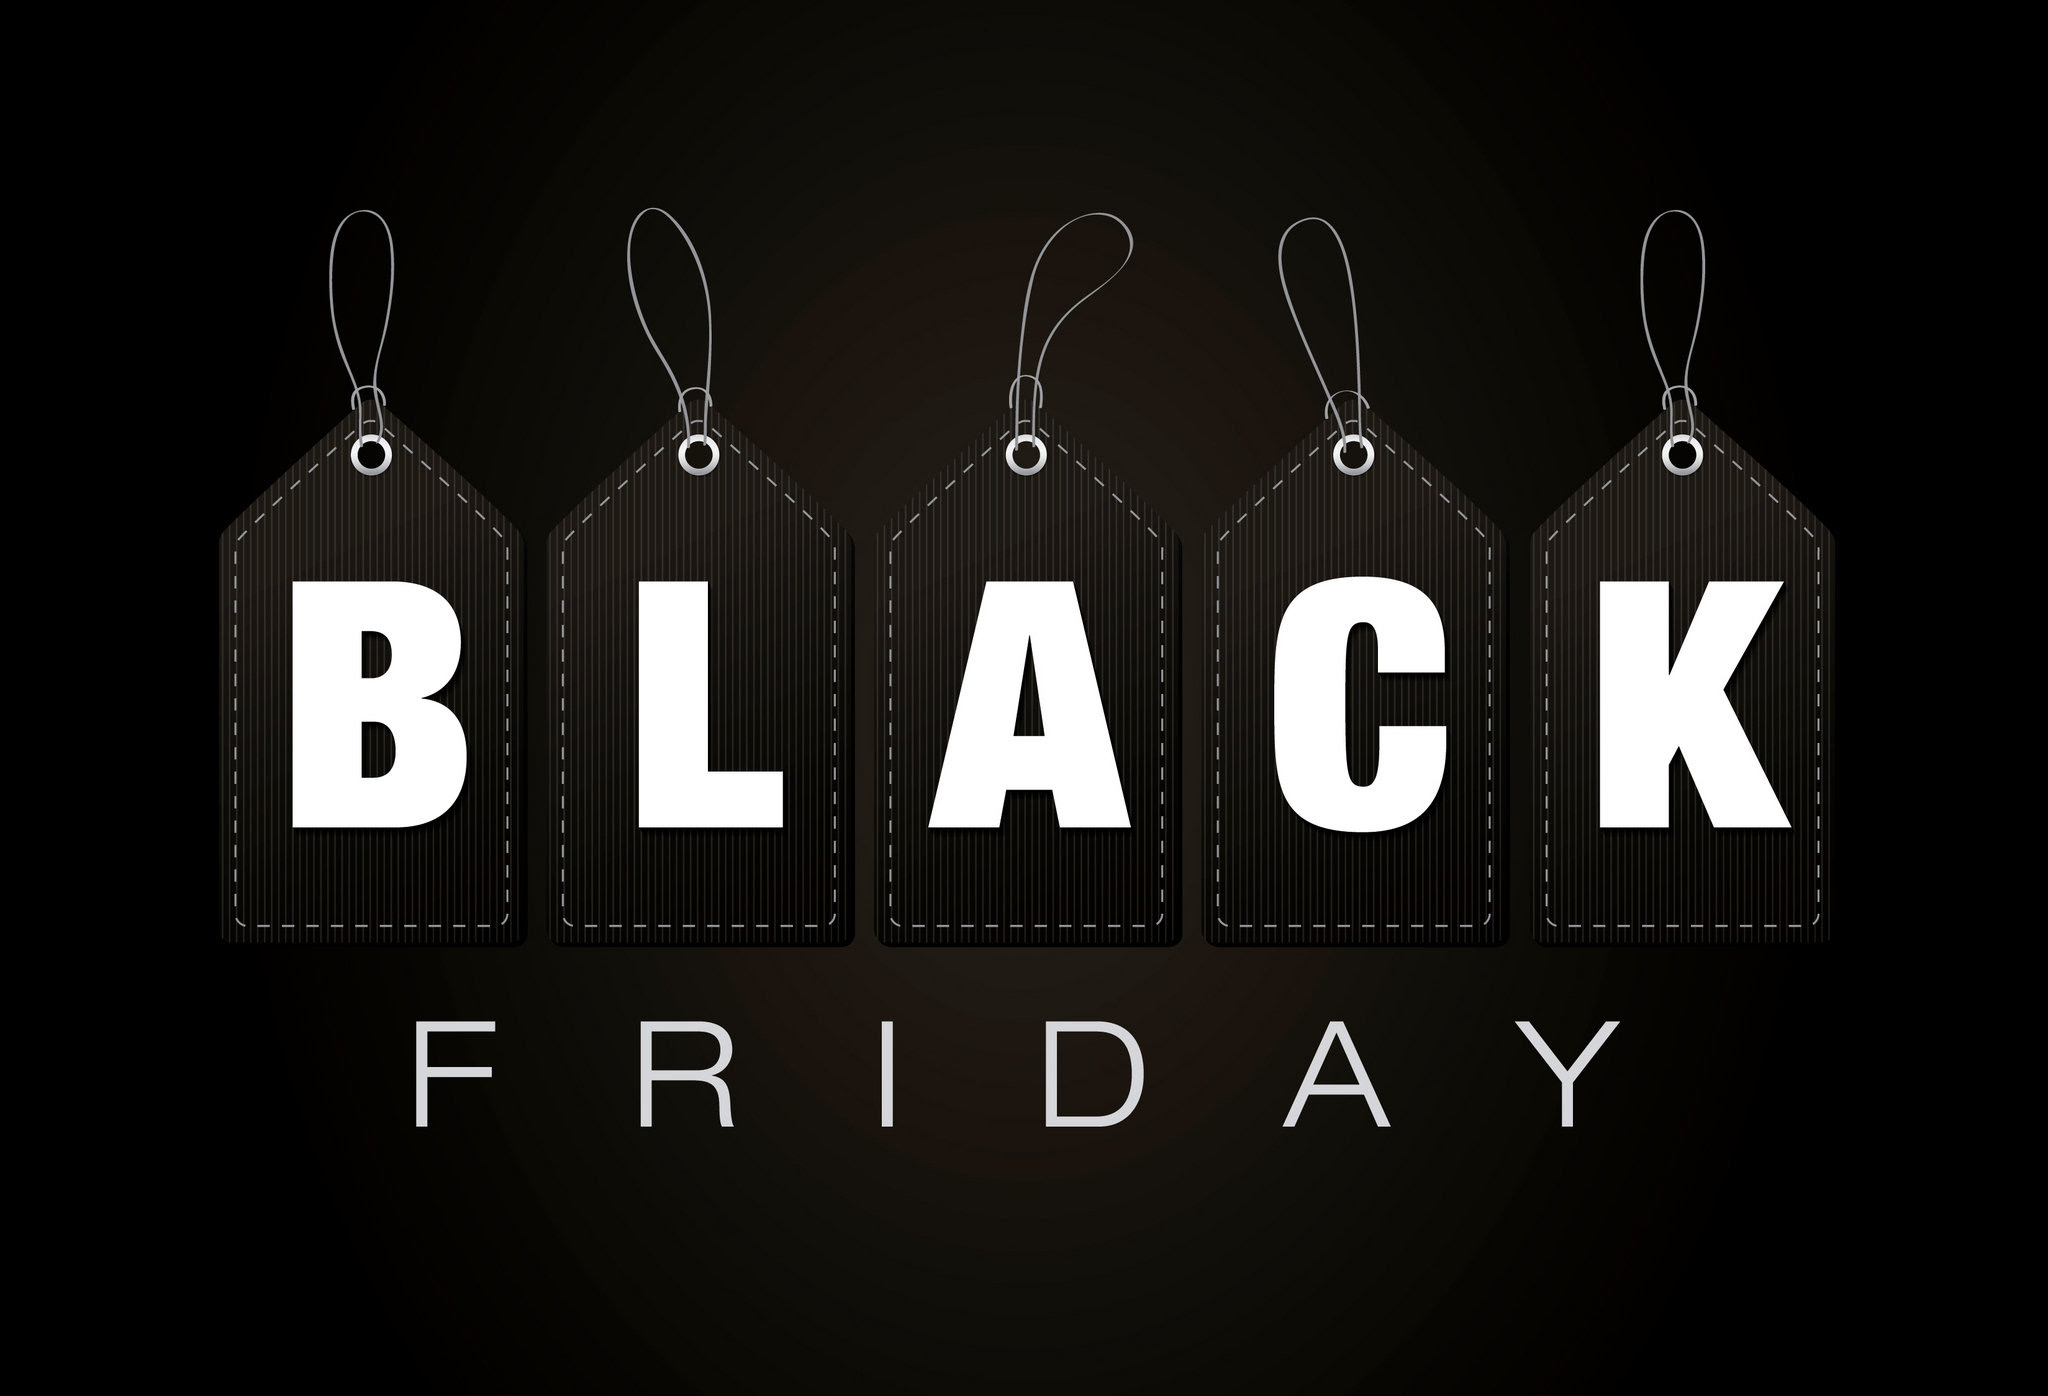 black-friday-sales-909f1191623e3f12.jpg